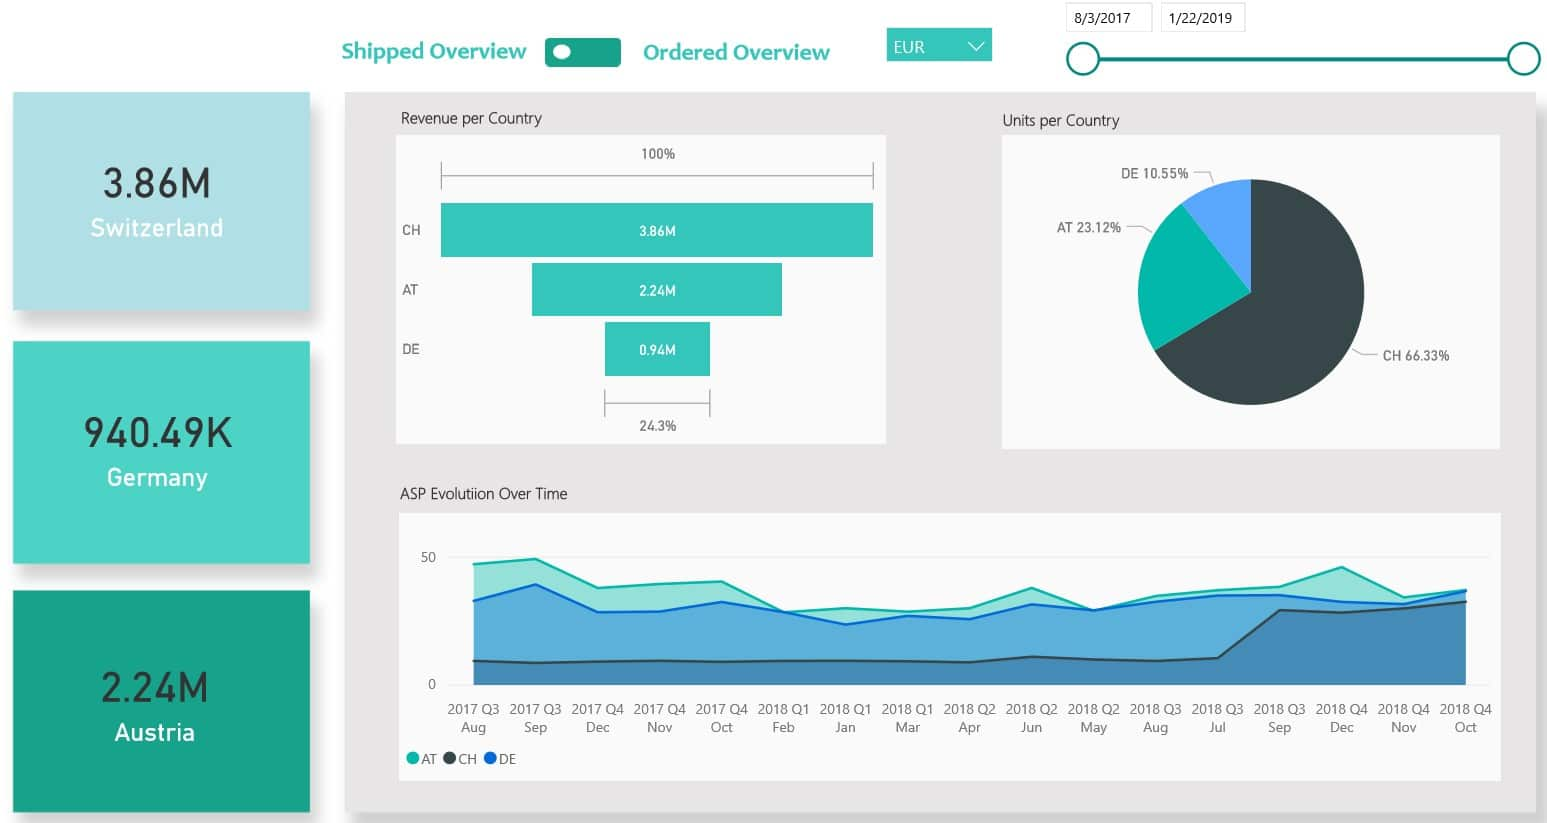 Real-time dashboards are a part of digital transformation